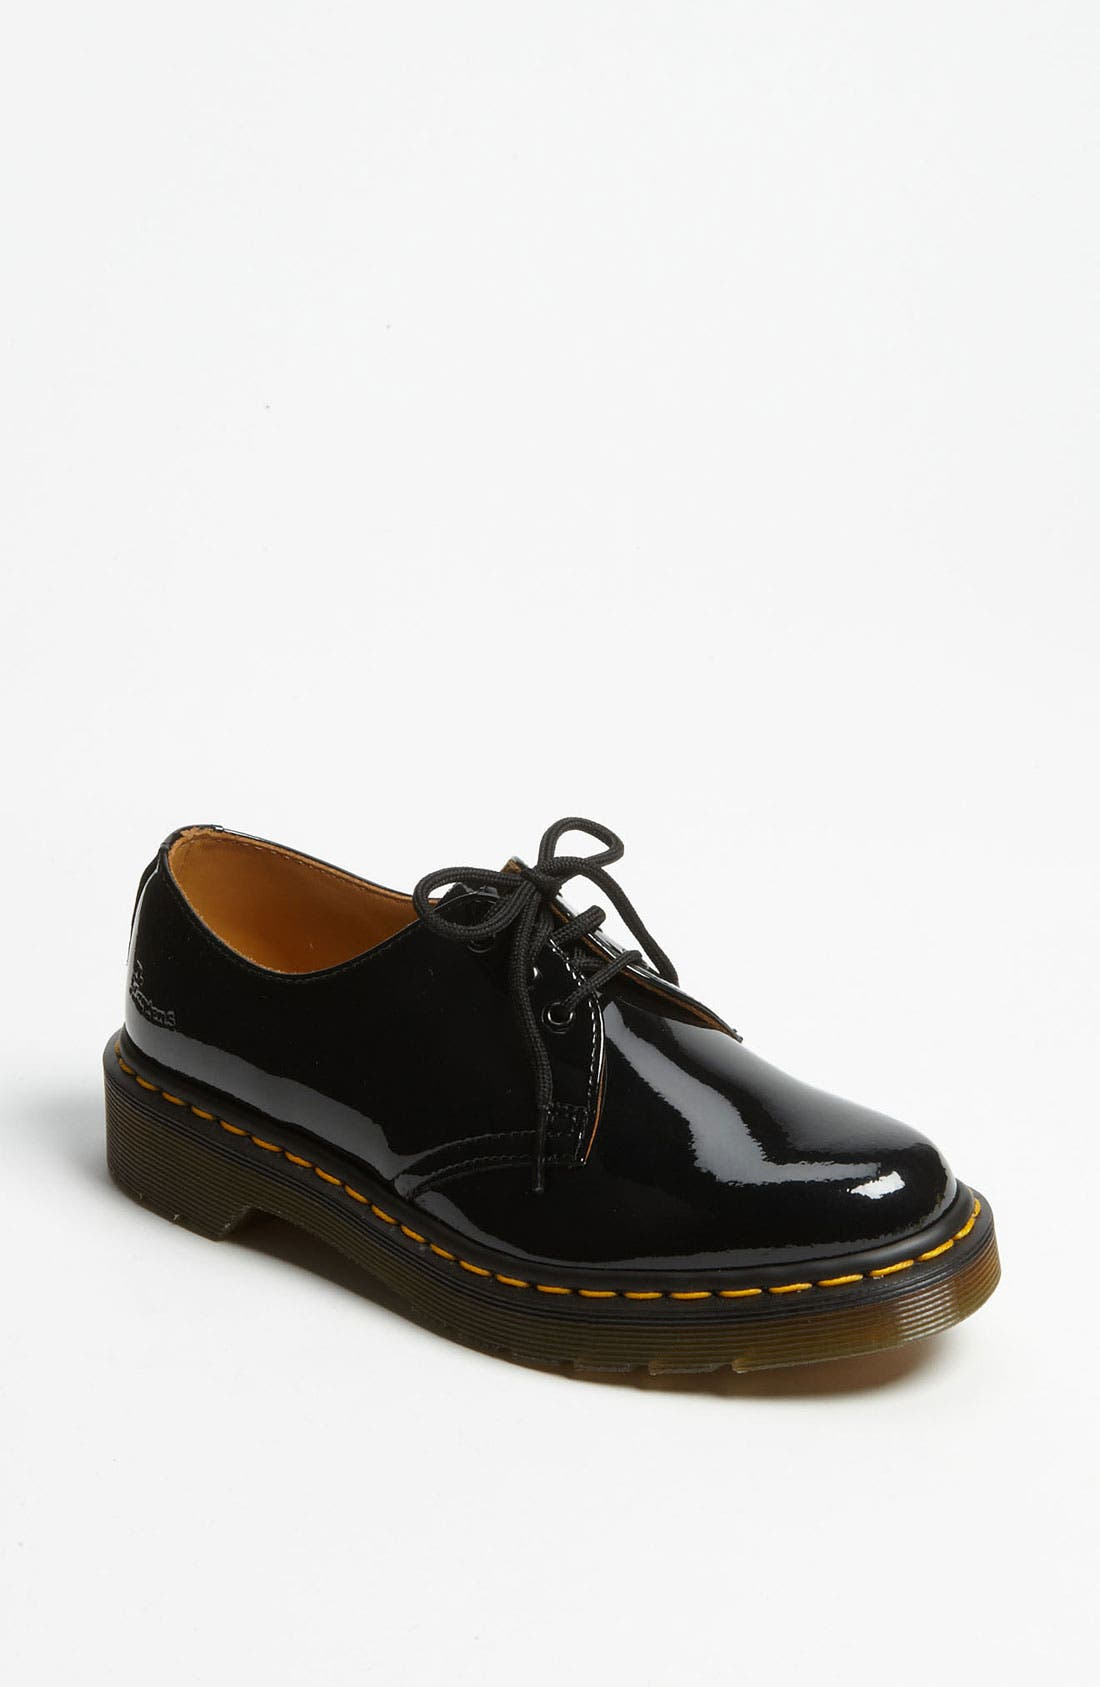 3-Eye Oxford,                         Main,                         color, 001